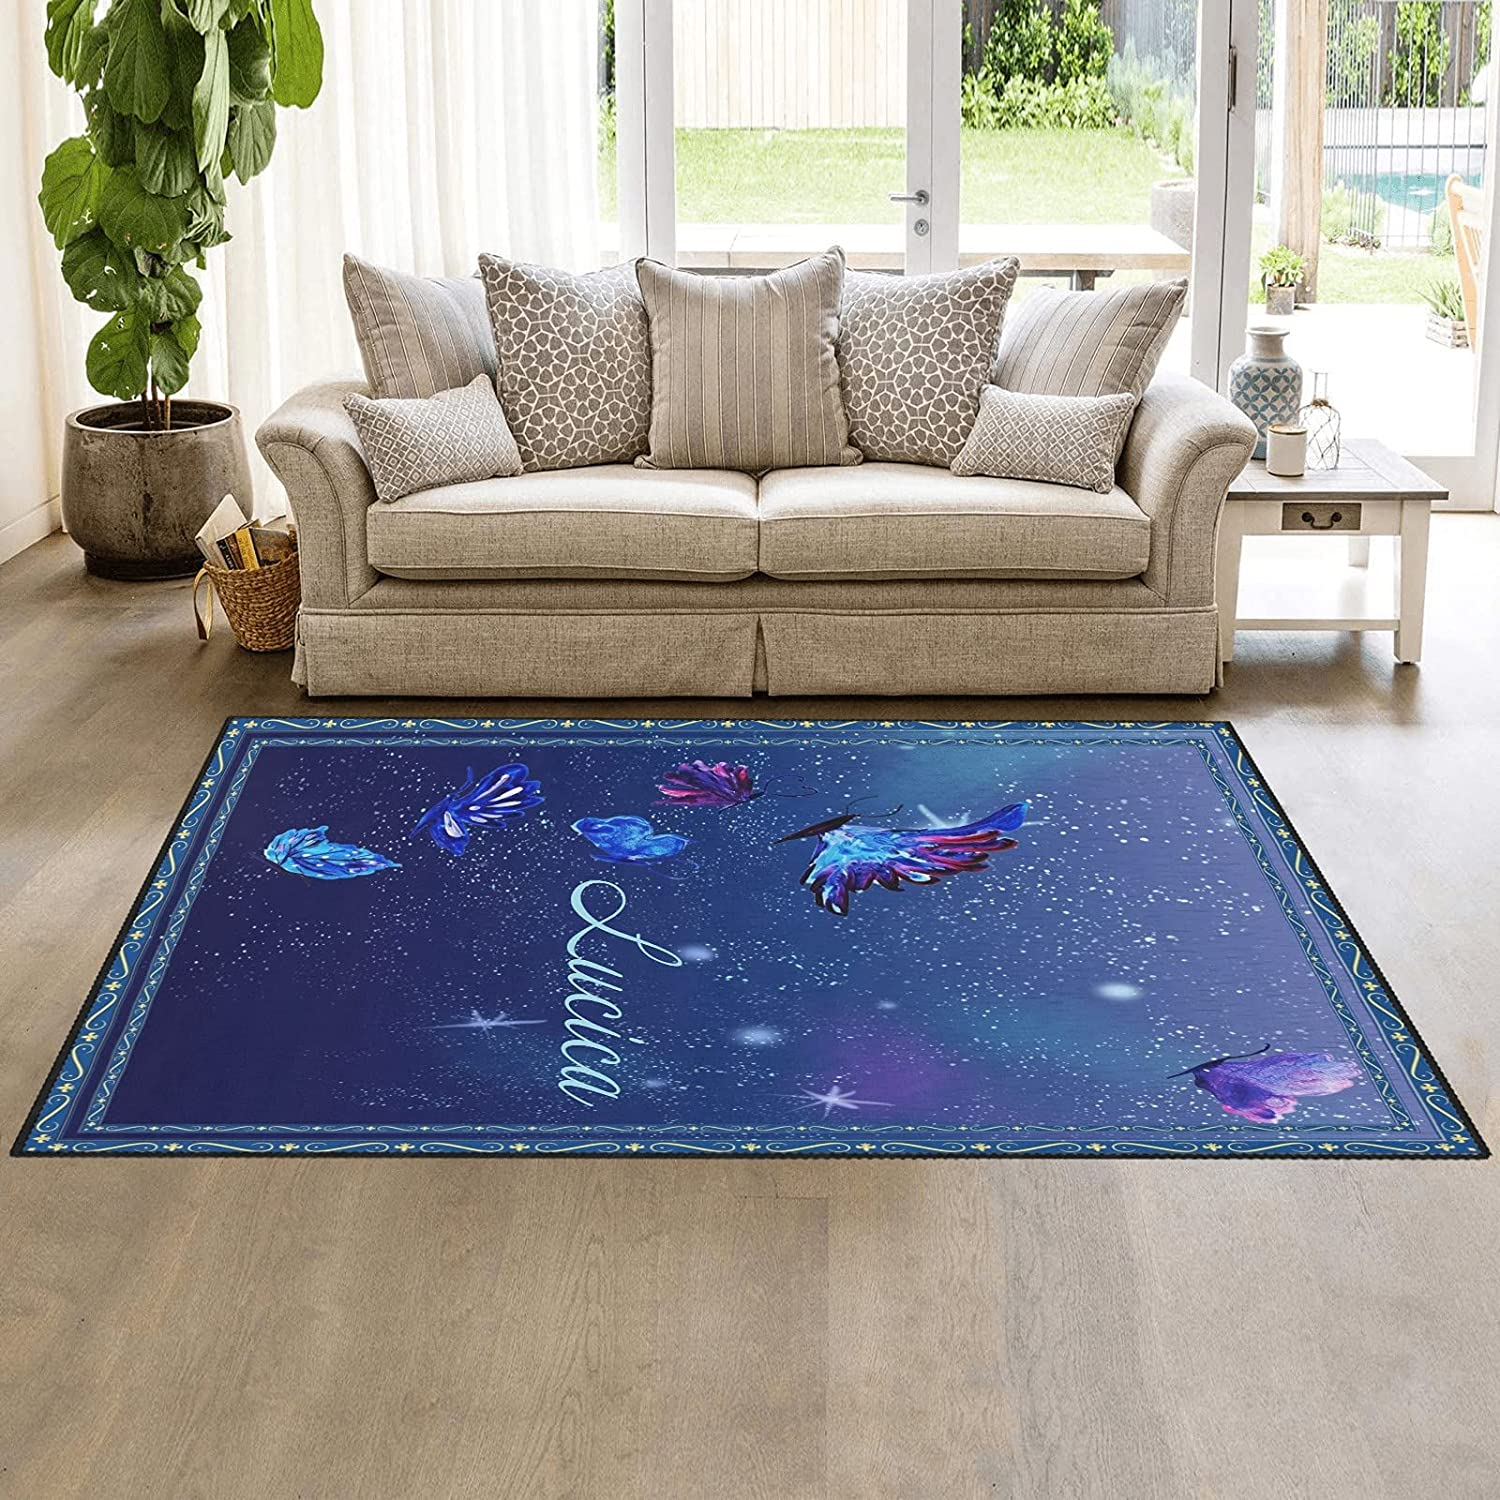 Pretty Watercolor Butterfly Area Ranking TOP10 Doormats Easy-to-use Rug Carpet Nursery